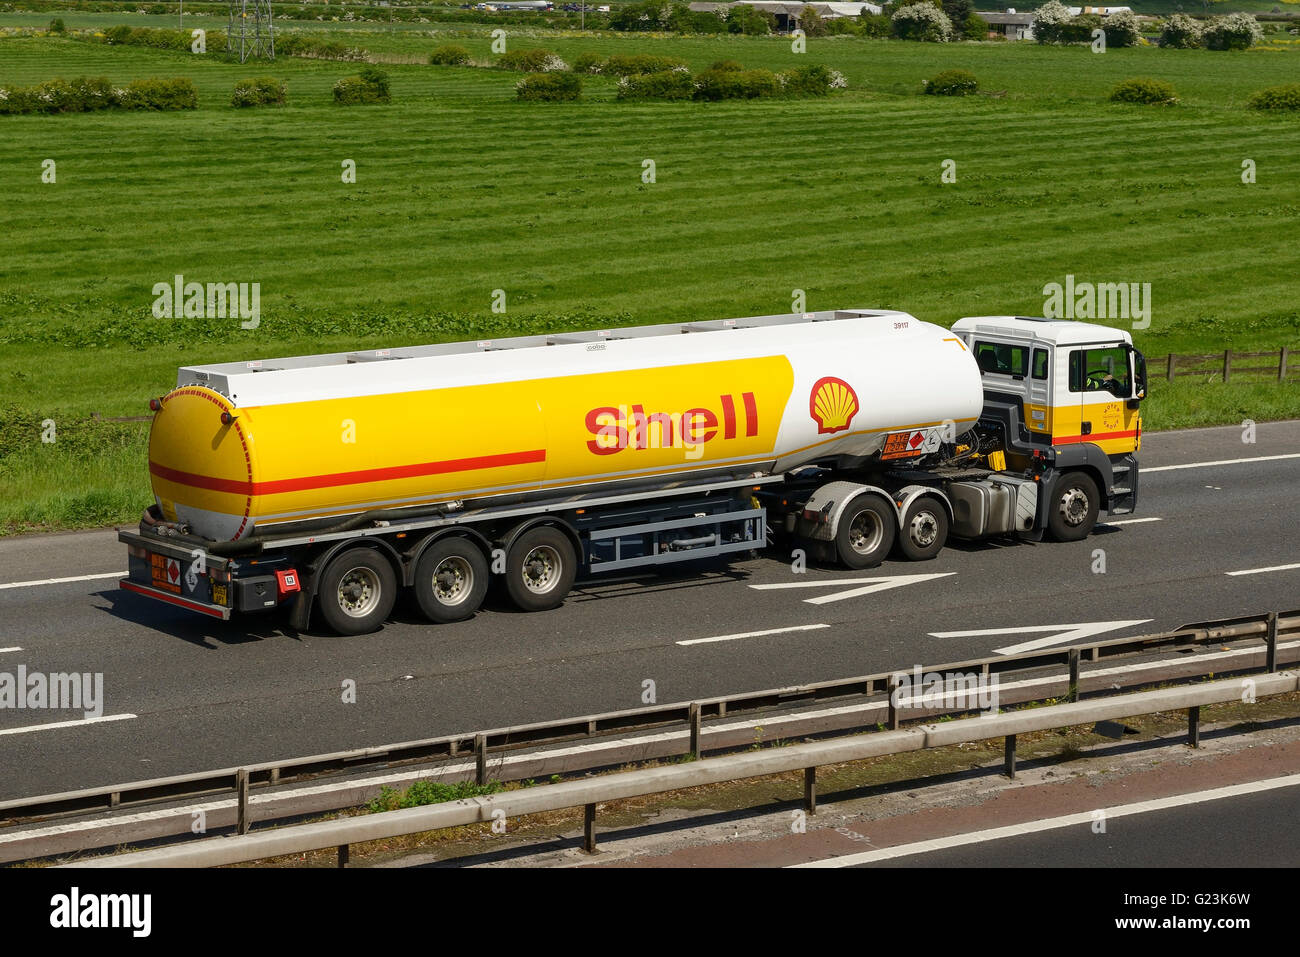 Shell fuel tanker HGV travelling on the M56 motorway in Cheshire UK - Stock Image